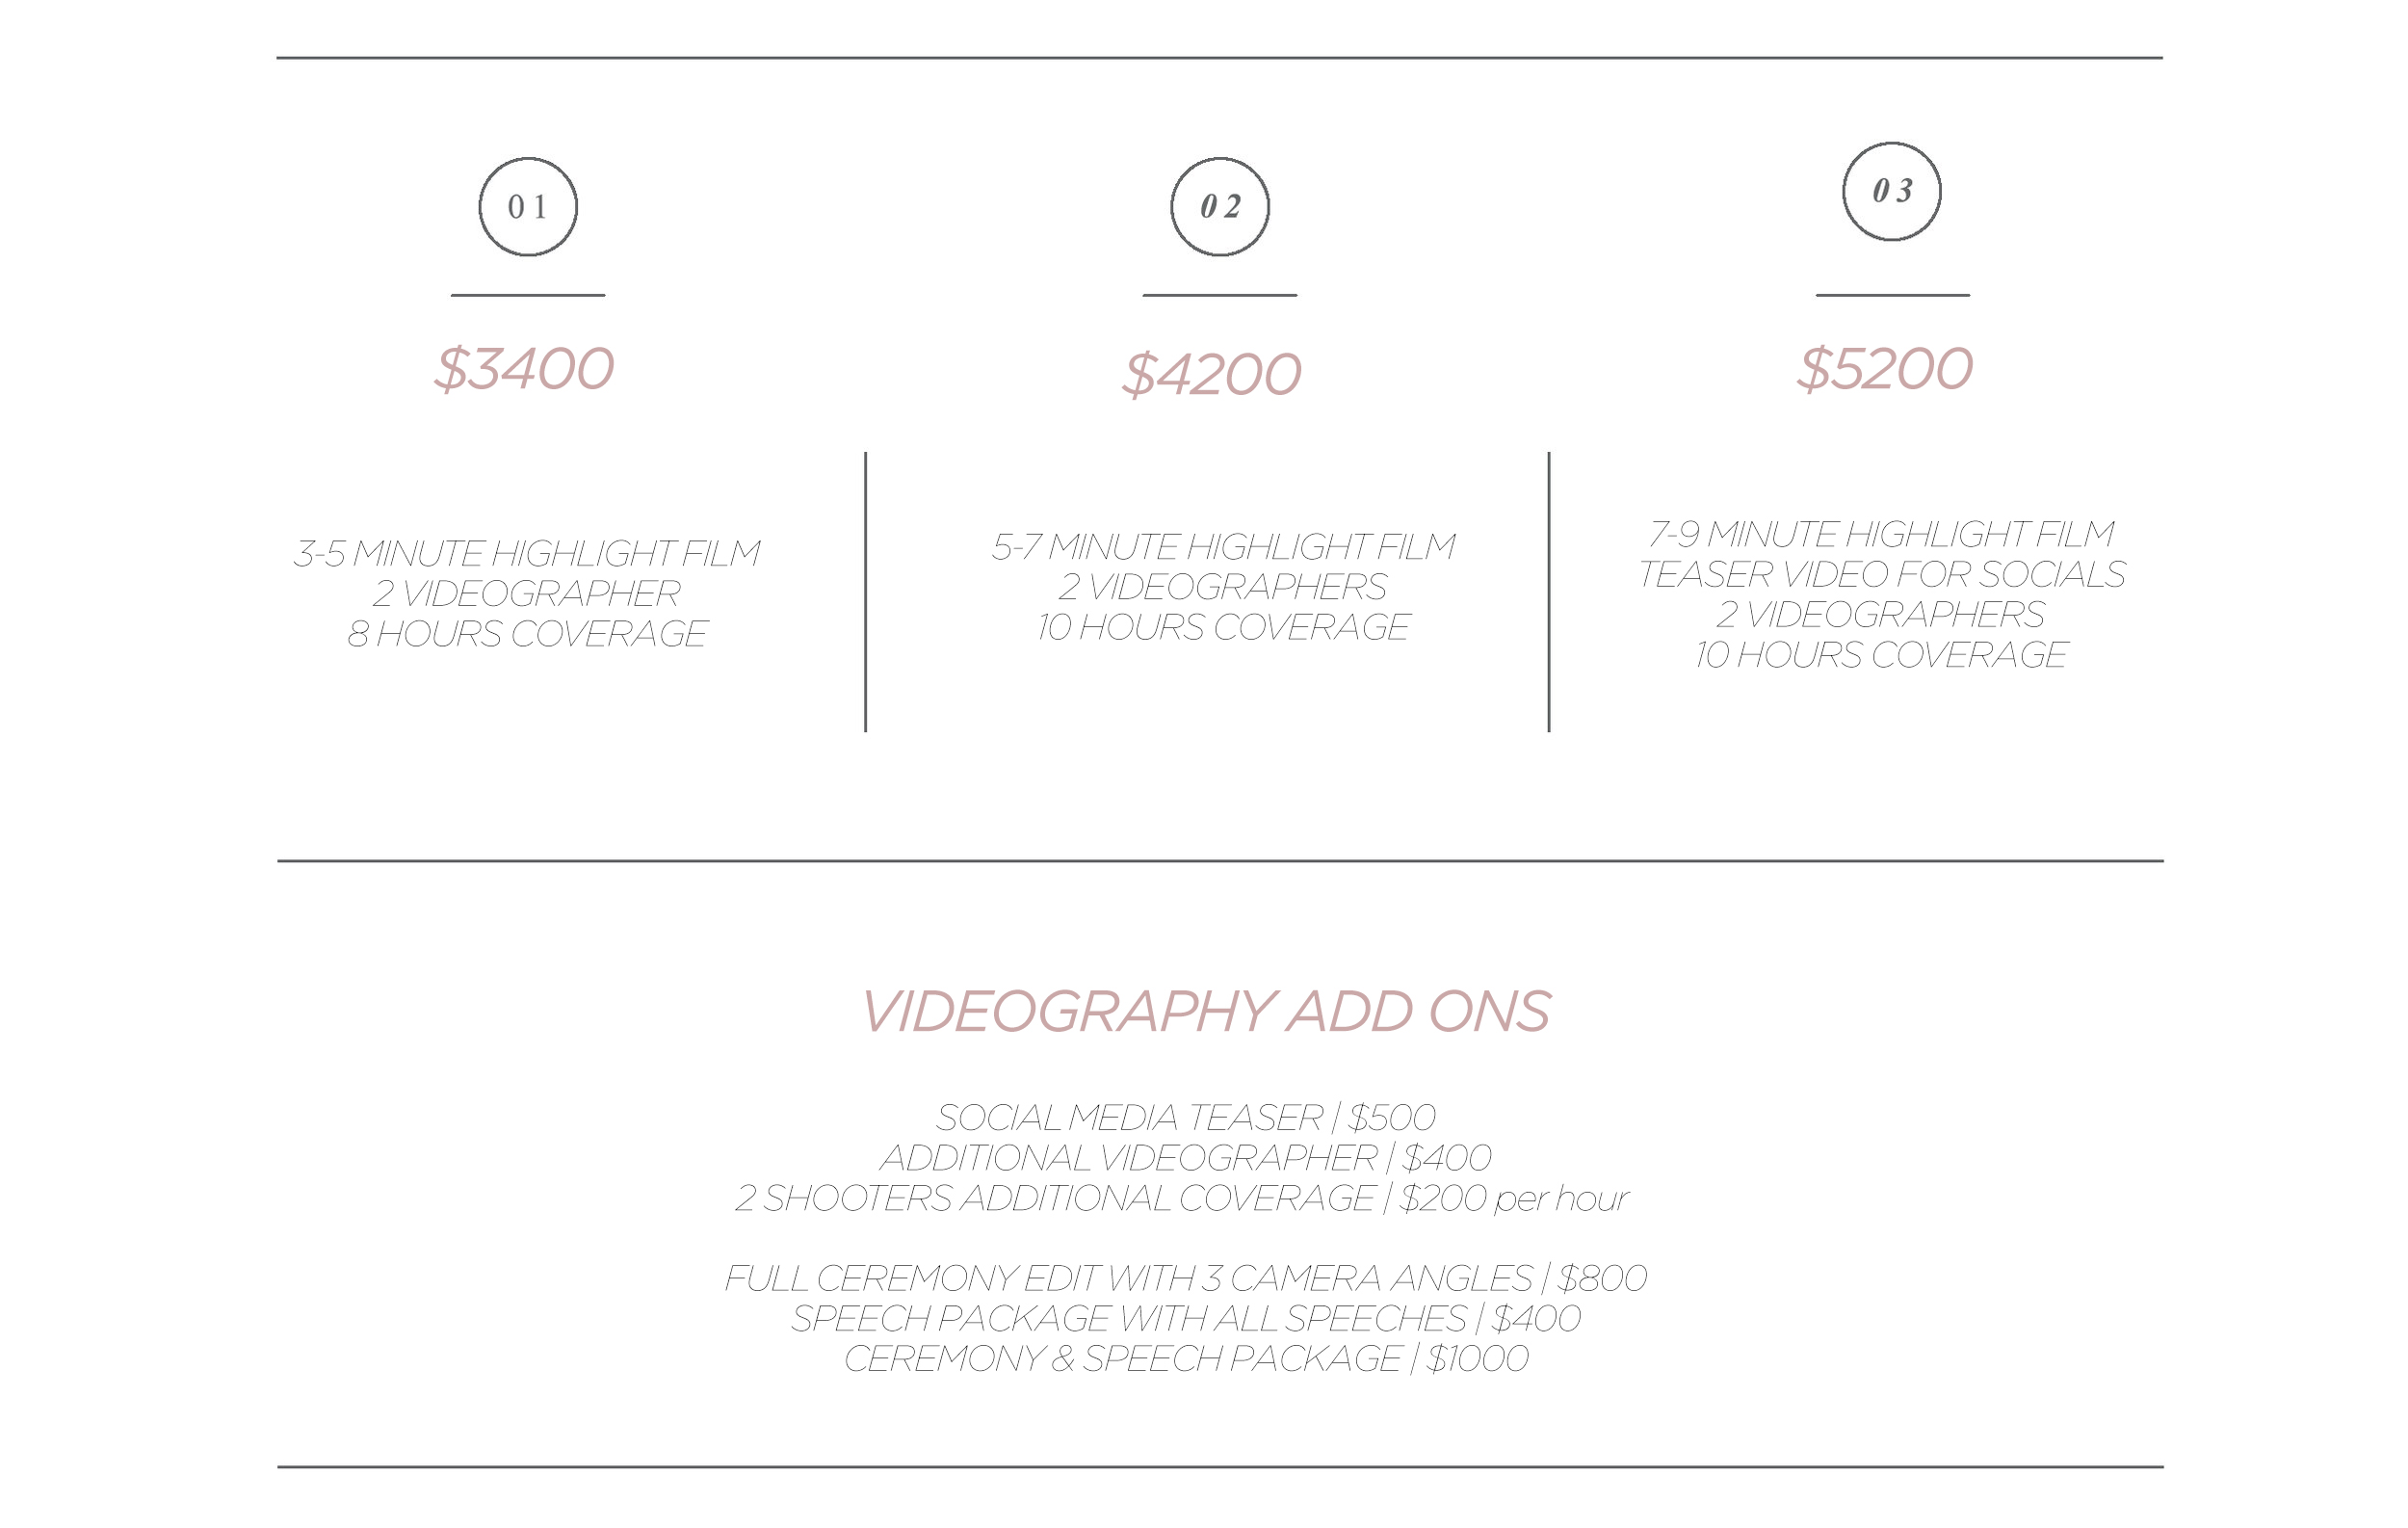 Pricing For Site NEWWWW.jpg